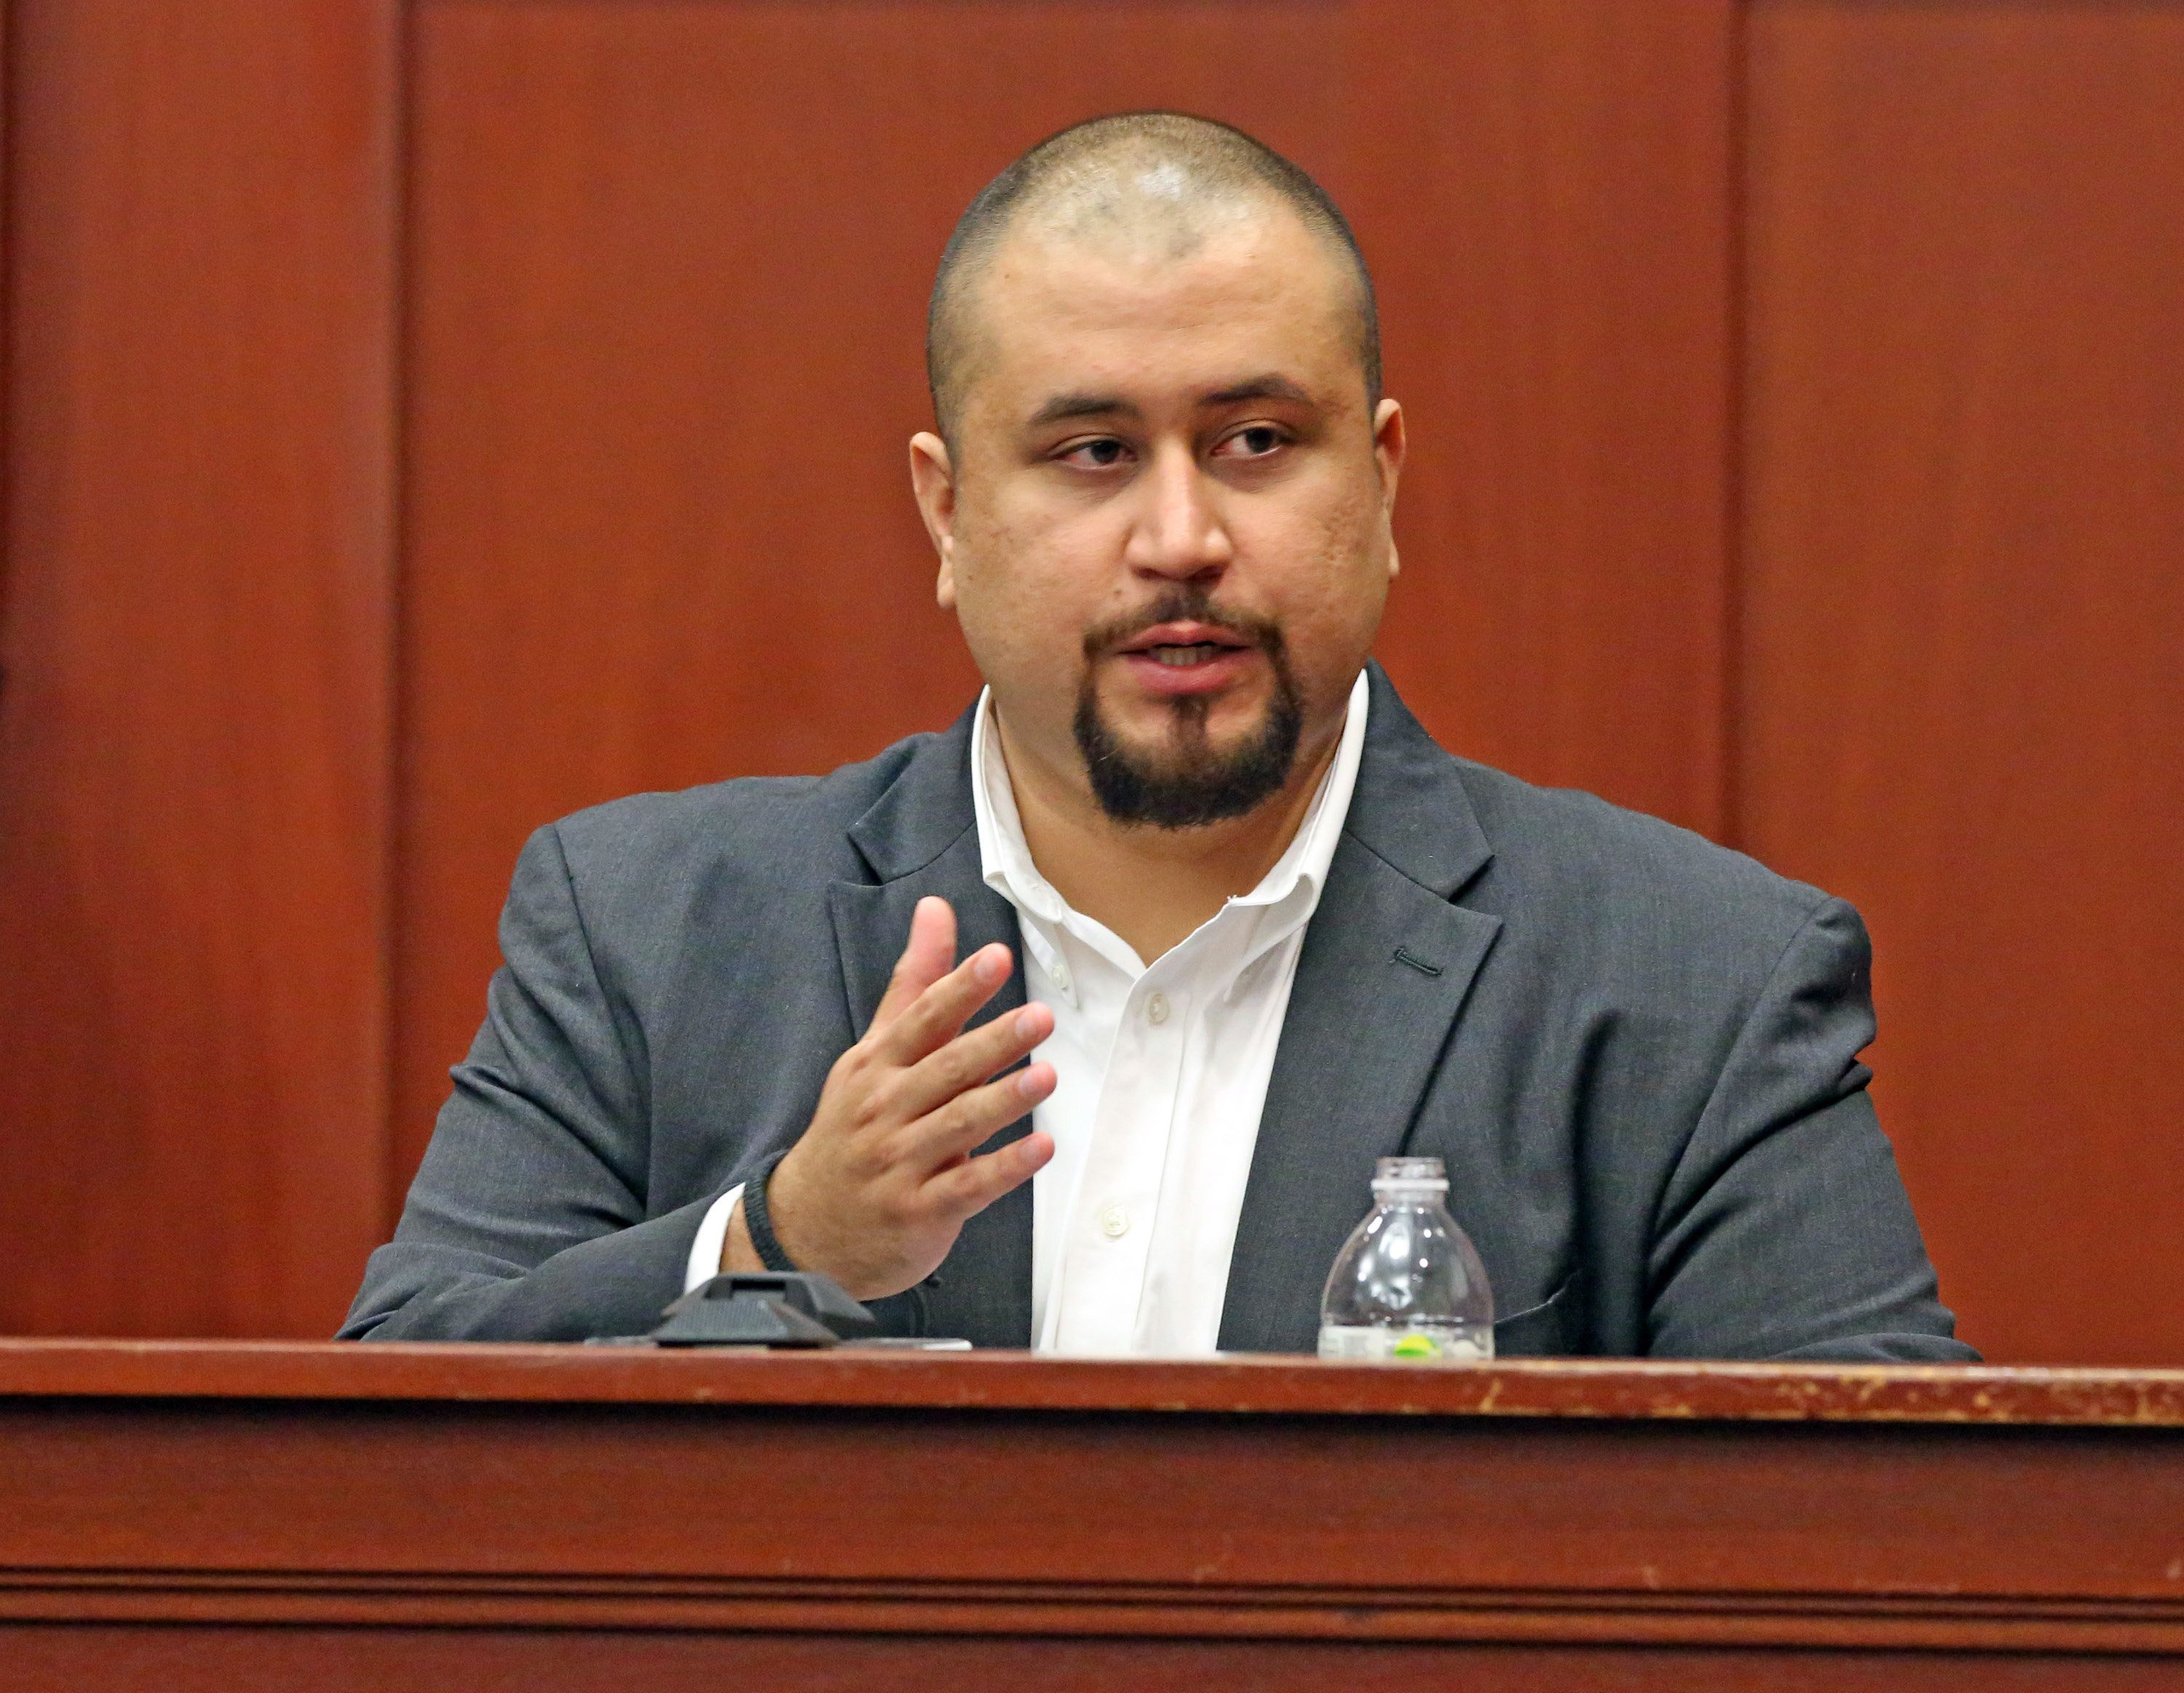 George Zimmerman looks at the jury as he testifies in a Seminole County courtroom Tuesday, Sept. 13, 2016 during the trial of Matthew Apperson, who is accused of trying to kill Zimmerman by shooting into his truck during a road rage dispute on Lake Mary Boulevard last year. (Red Huber/Orlando Sentinel/TNS via Getty Images)